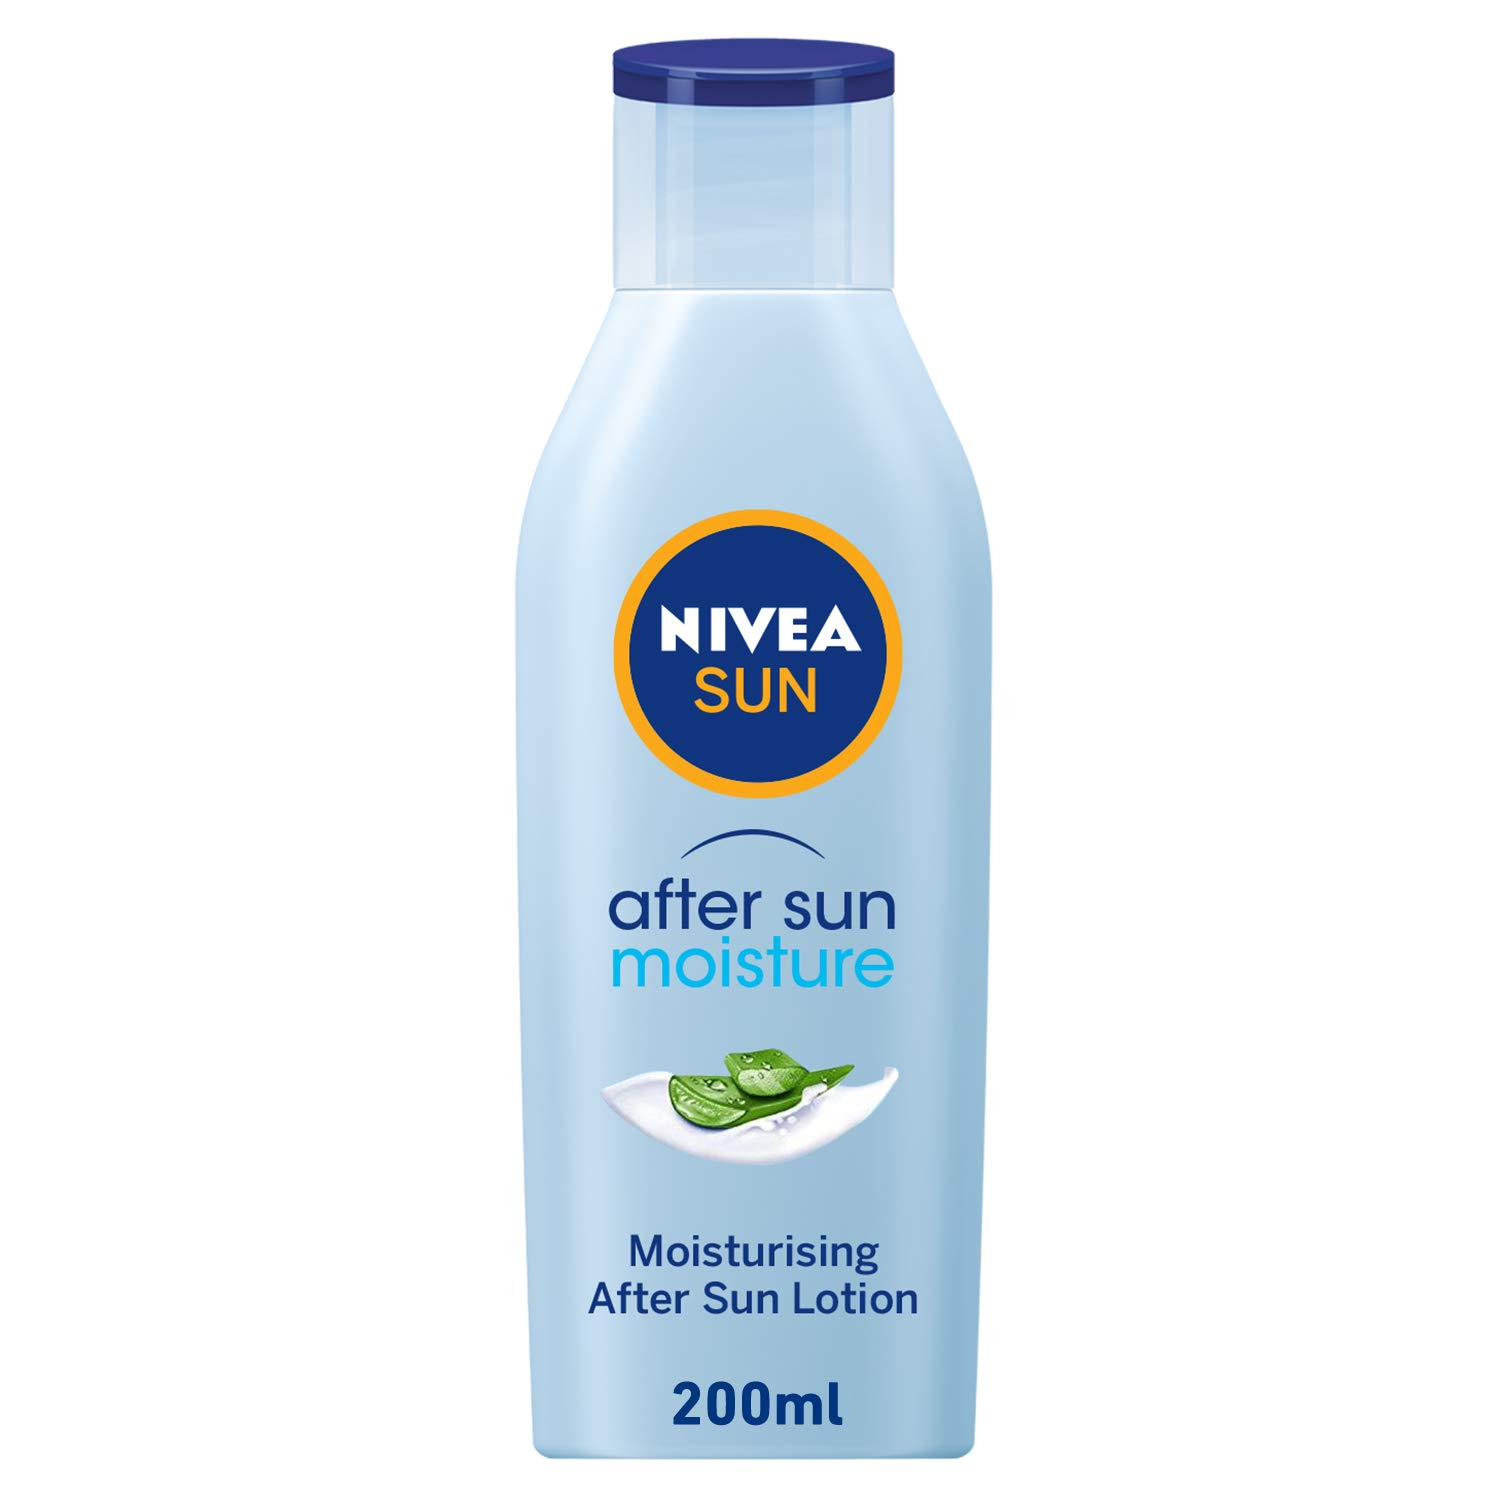 Nivea Sun Moisturising After Sun Lotion With Aloe Vera Silky Skin Feeling 200ml Beauty